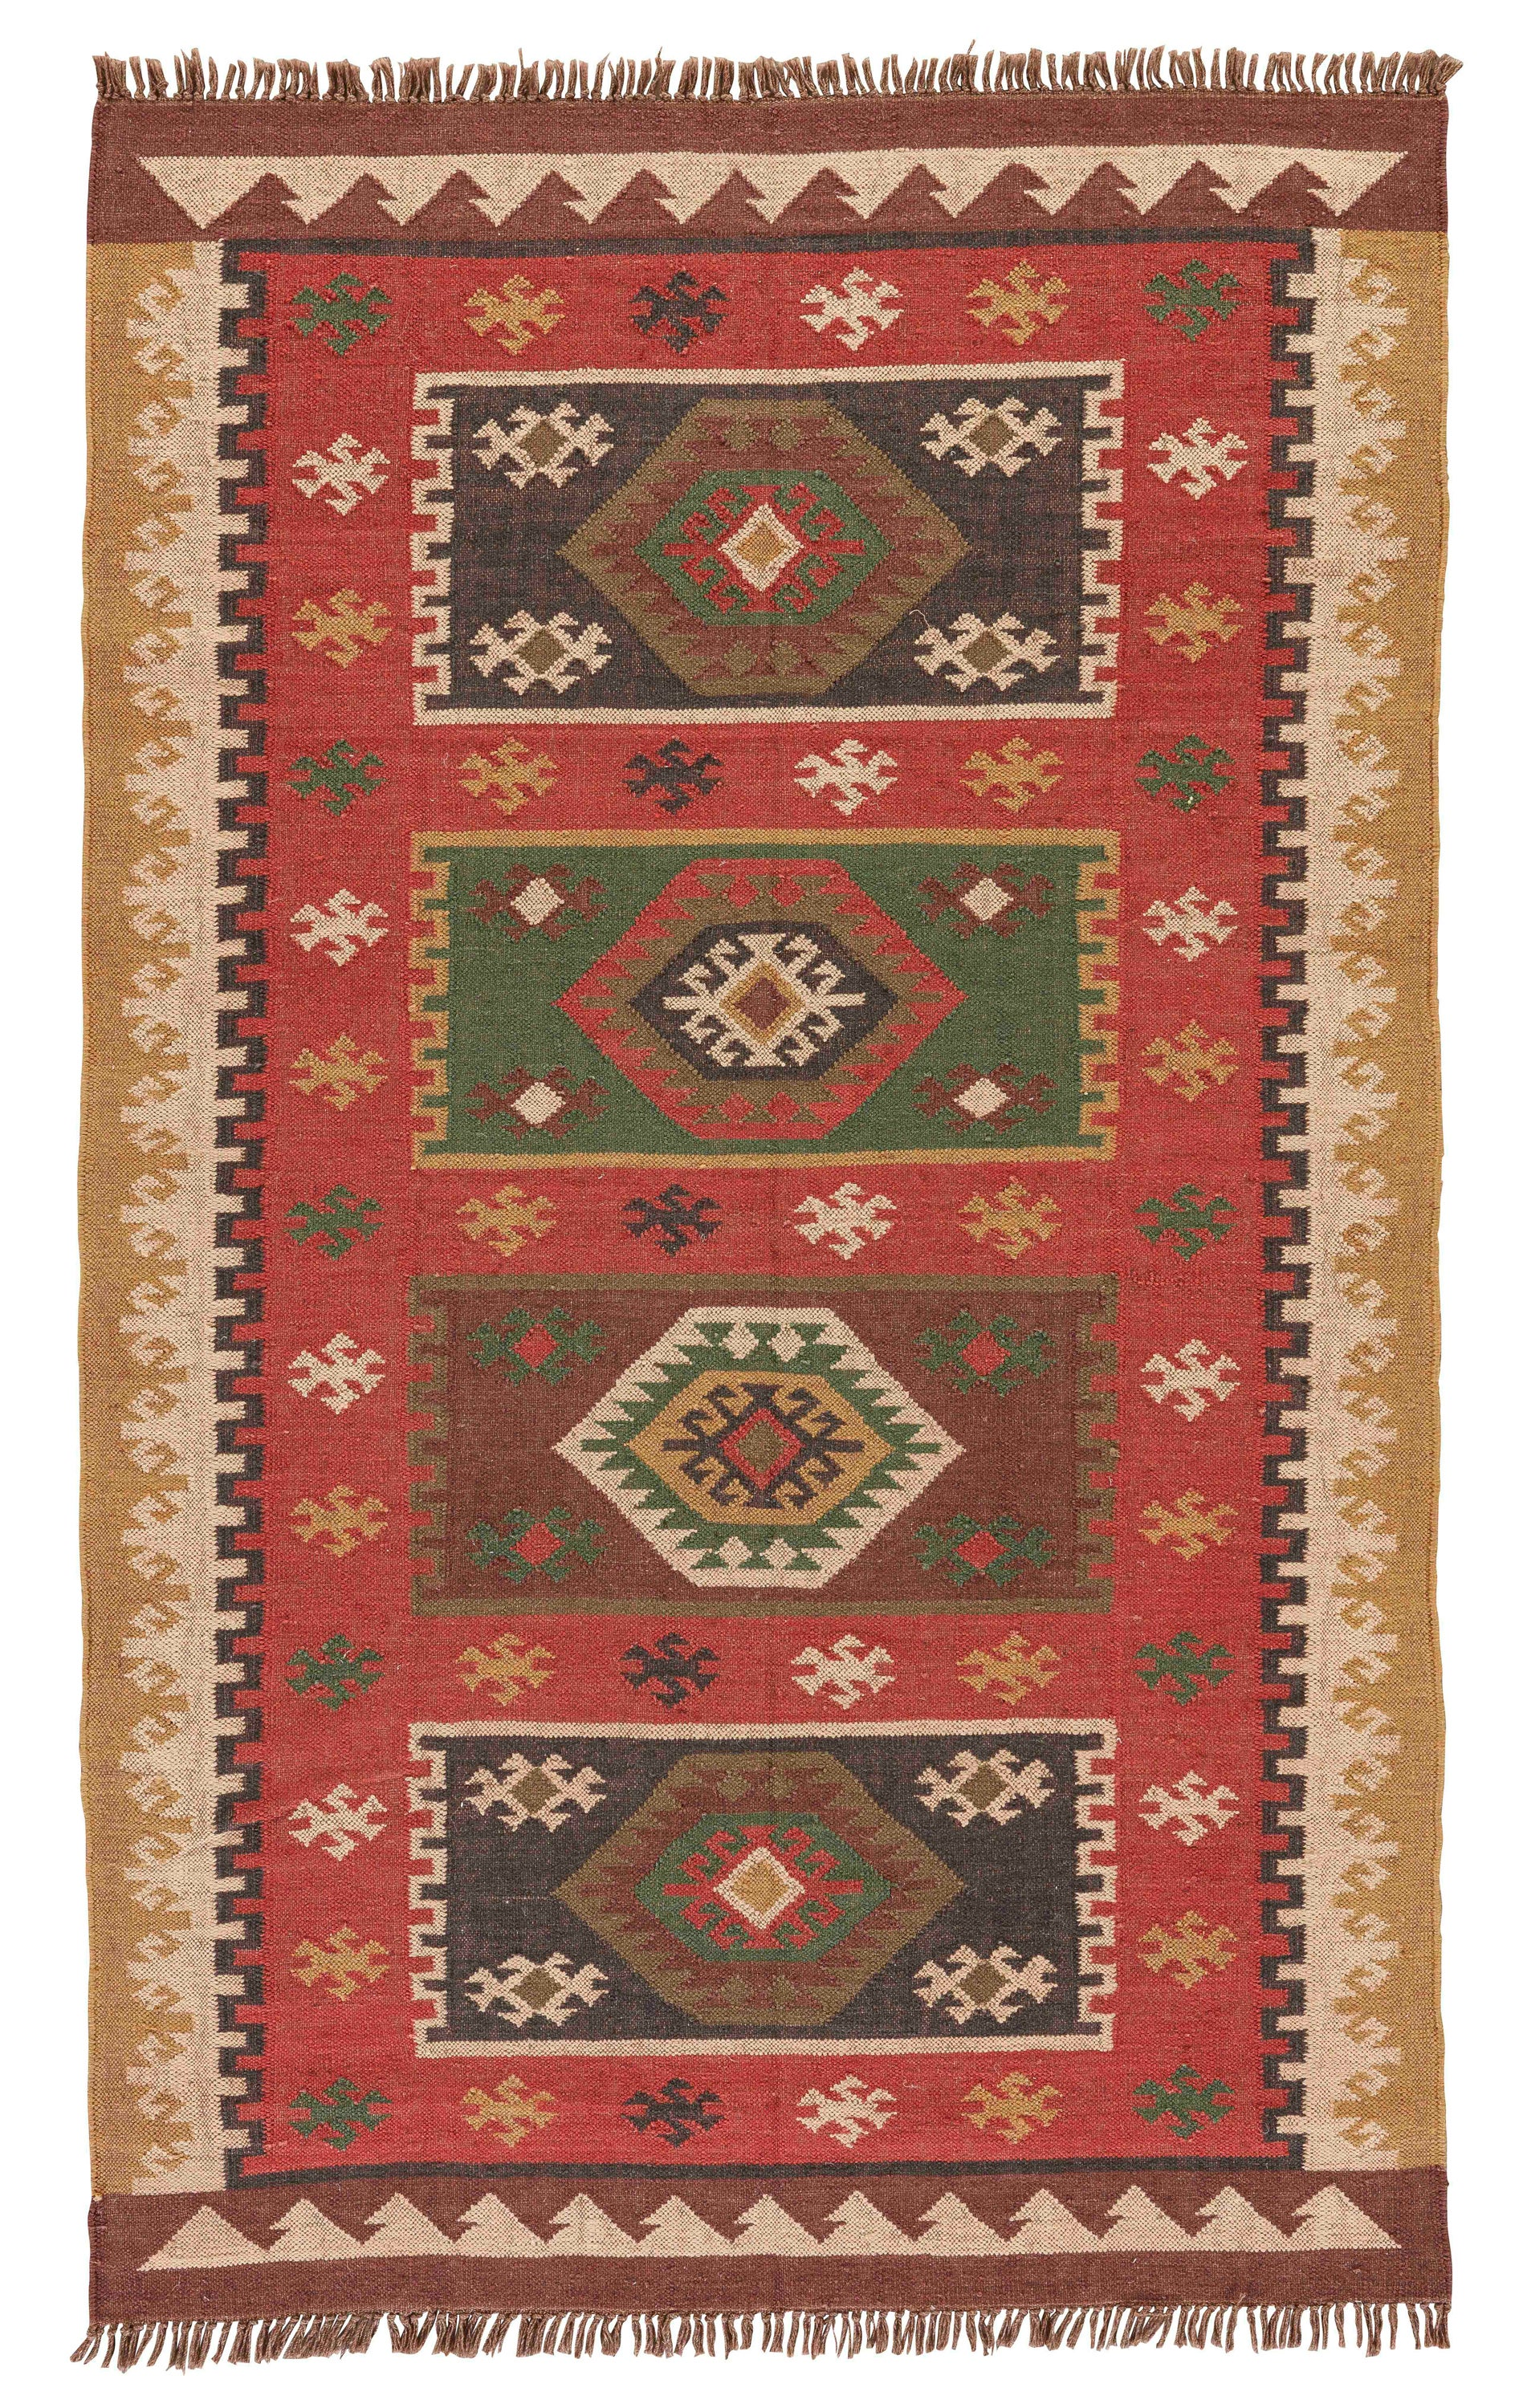 Rectangle 4x6 Red Geometric Dhurrie Jute & Natural Fibers Southwestern recommended for Kitchen, Bedroom, Bathroom, Dining Room, Office, Hallway, Living Room